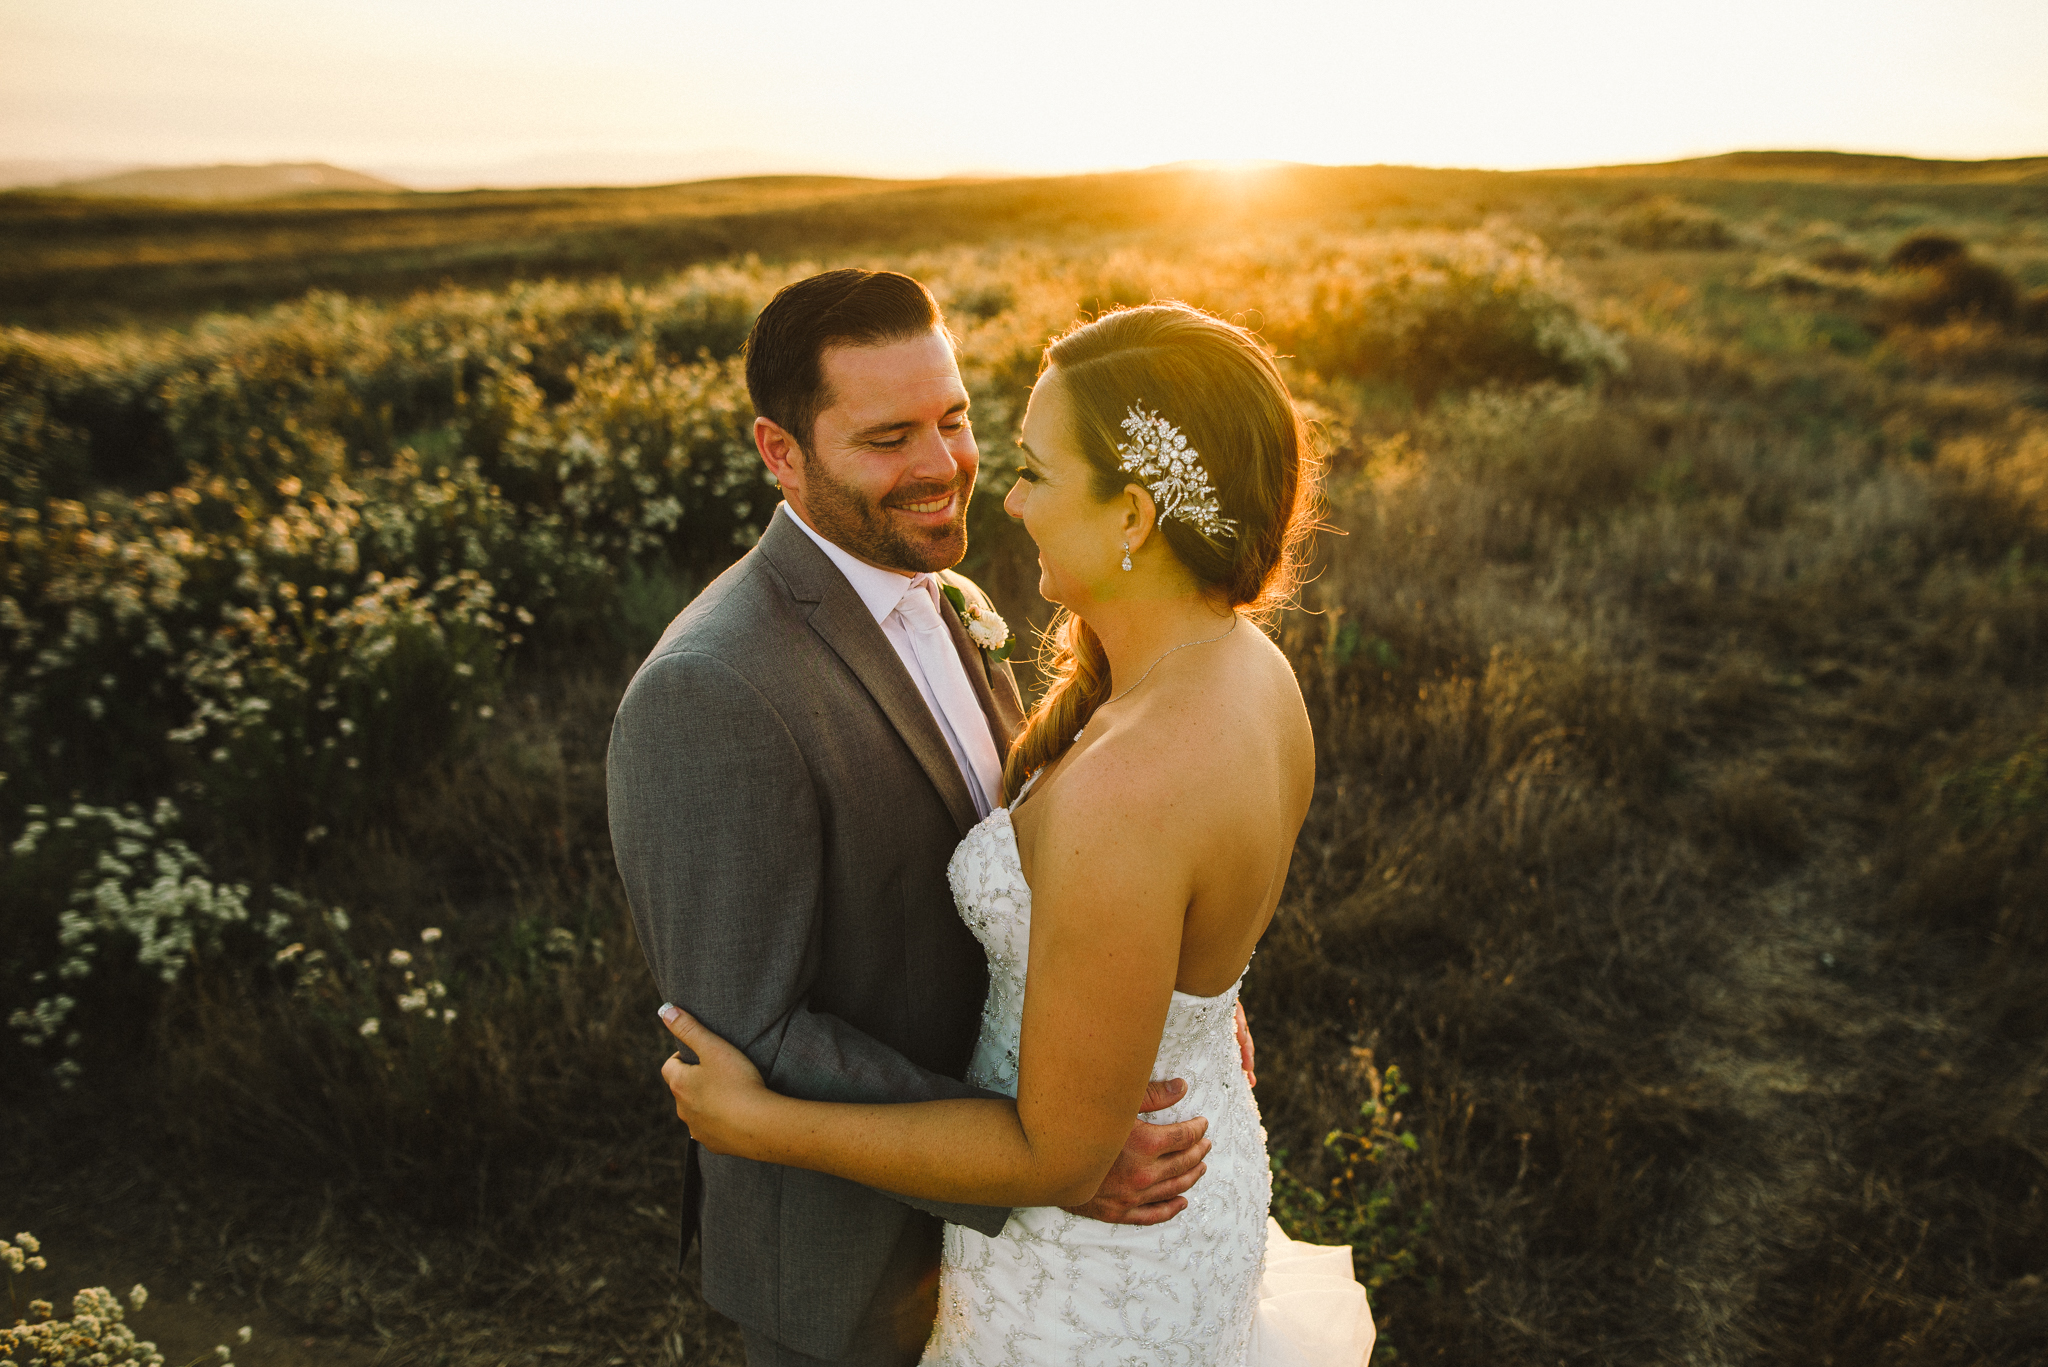 Isaiah & Taylor Photography - Destination Photographers - Temecula Winery Sunset Wedding-12.jpg